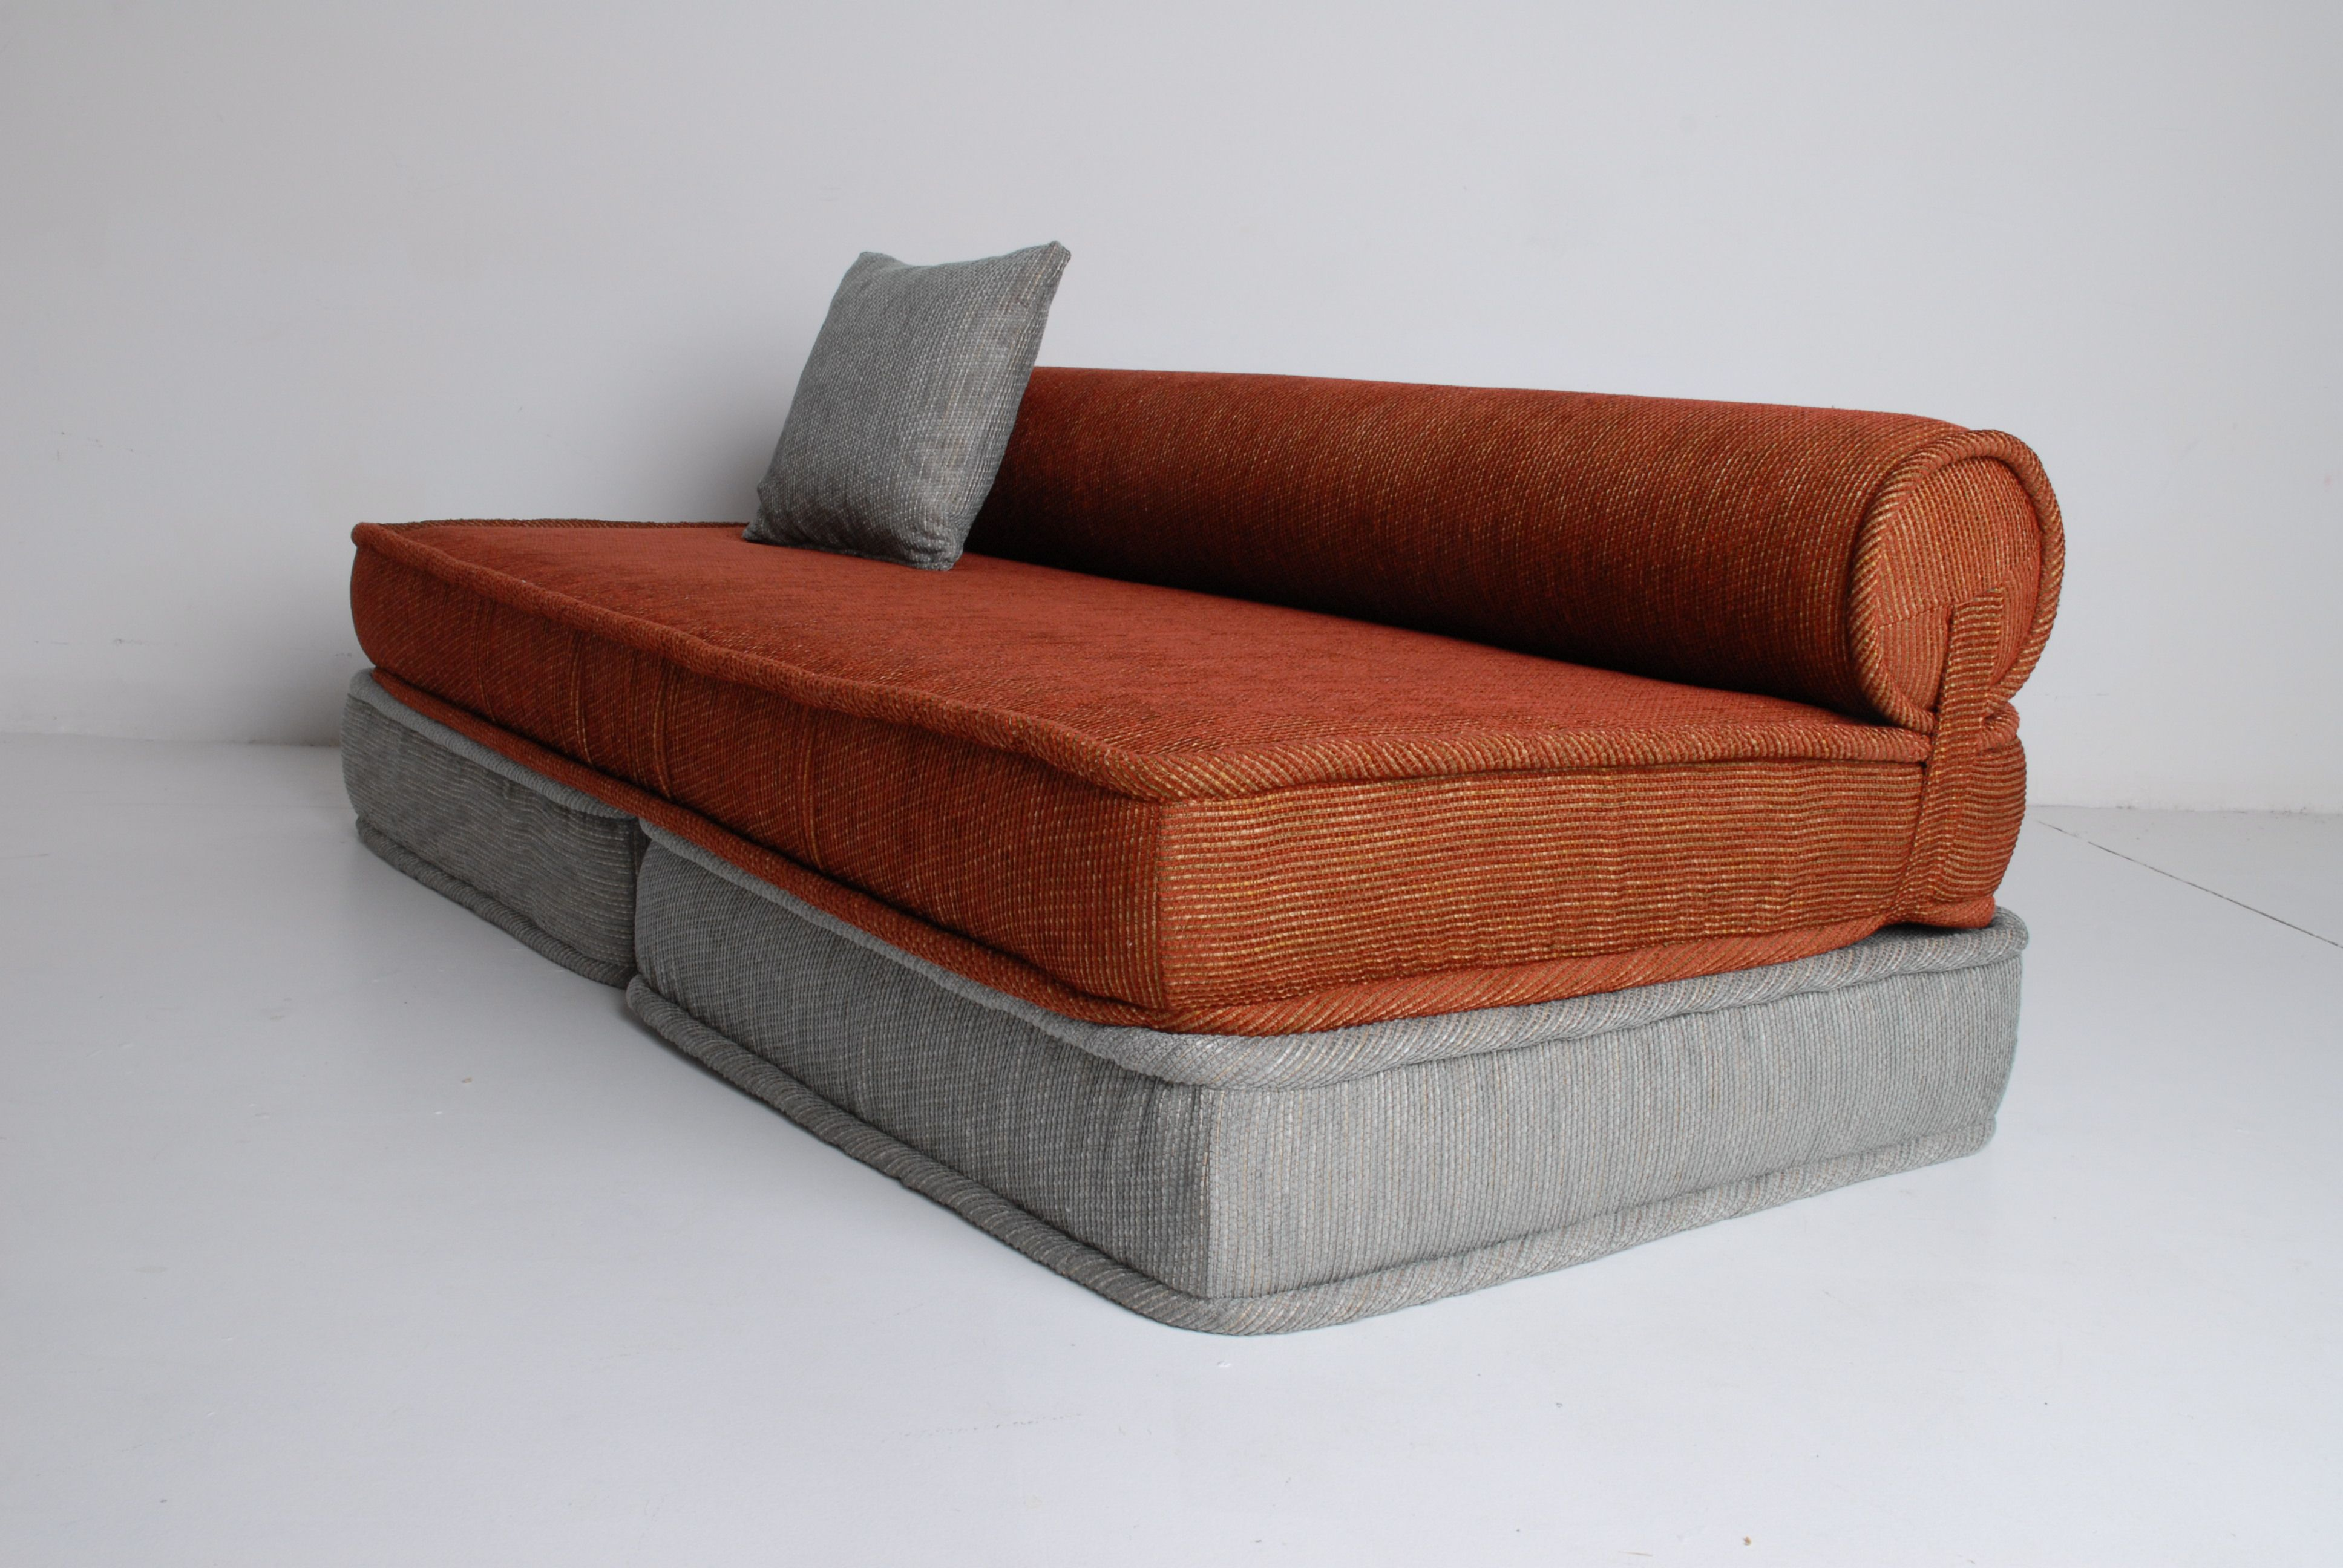 moroccan sofa design small chaise sleeper jonjo floor seating google search indian